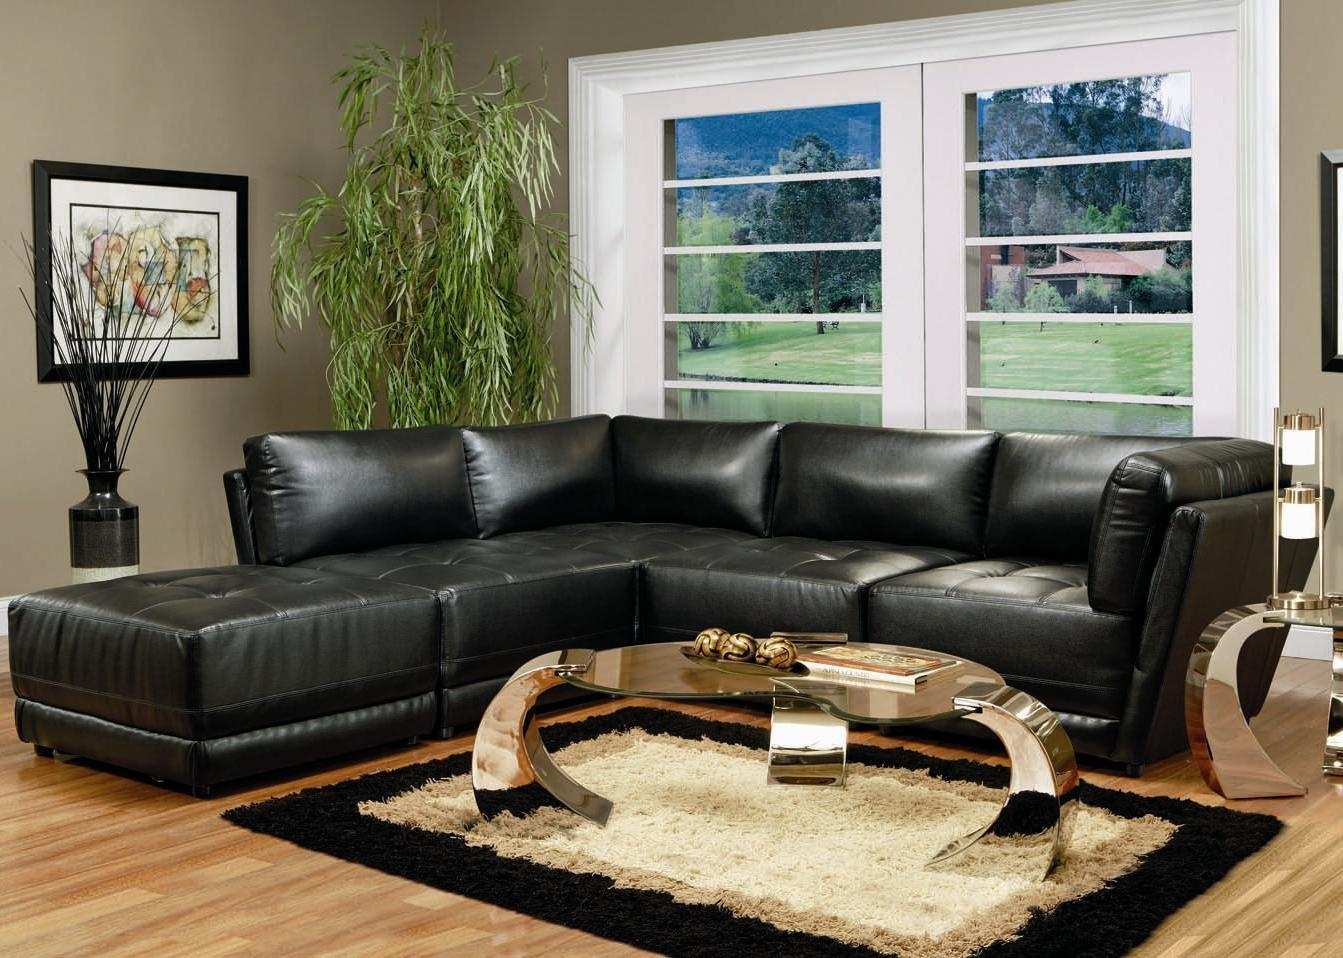 Modern Black Leather Modular Sofa Intended For Leather Modular Sectional Sofas (Image 12 of 20)